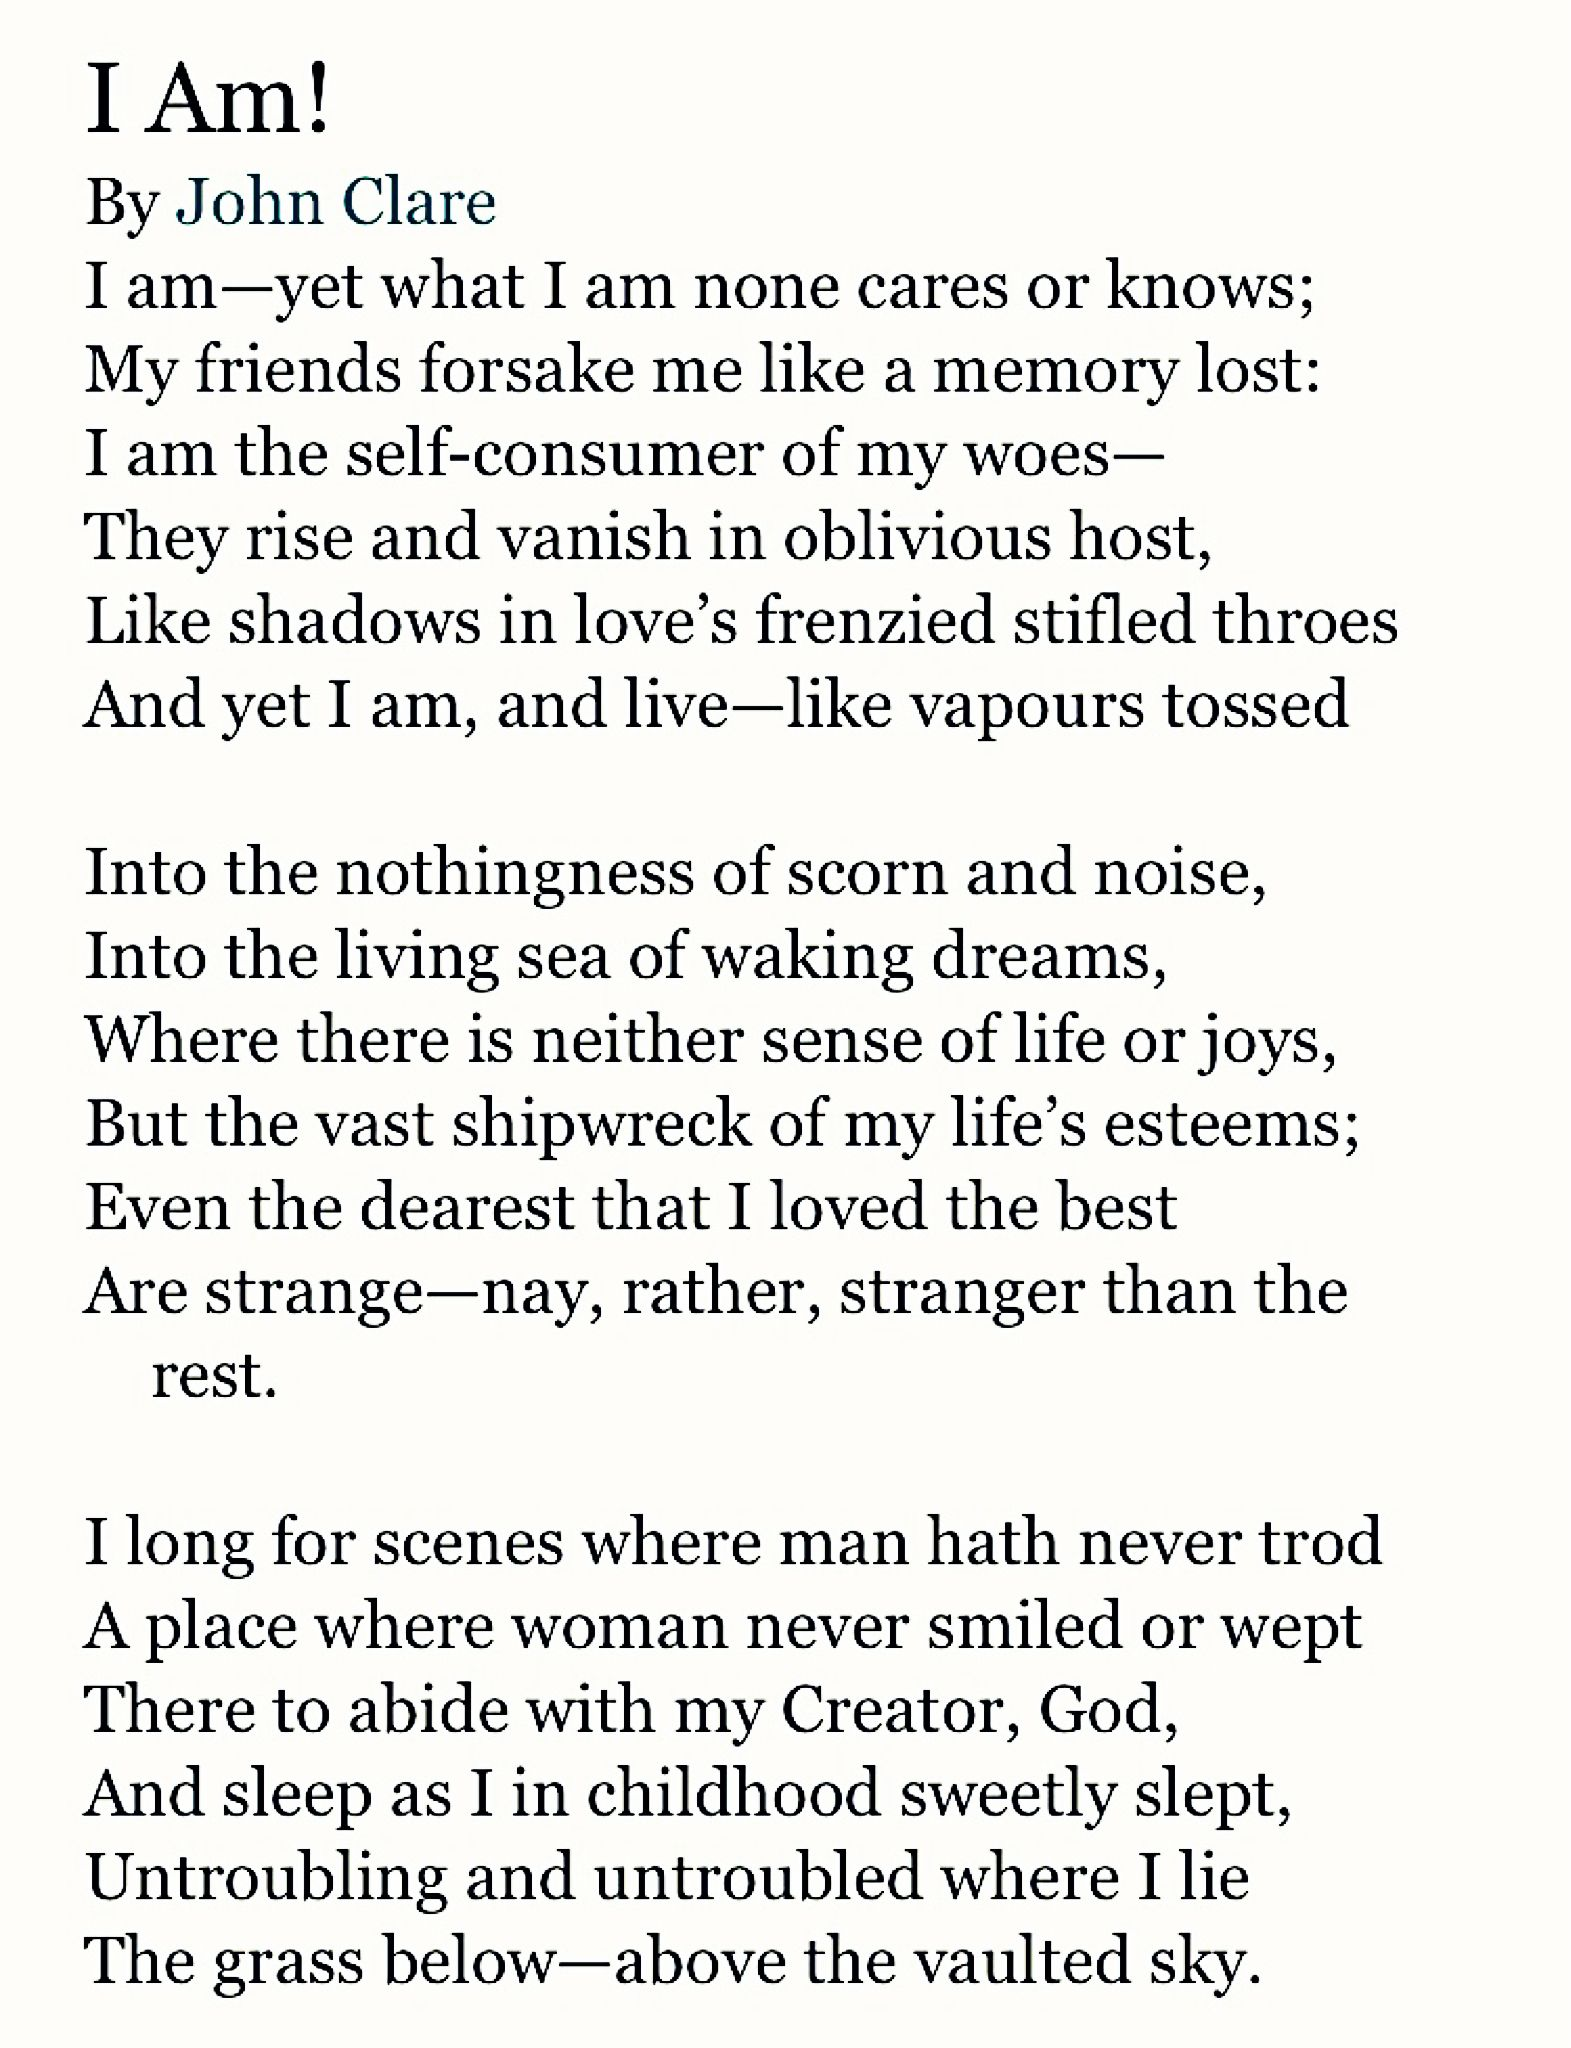 I Am By John Clare Poetry People Quote Poem Quotes Keat Ode To Autumn Analysis Analysi Summary Pdf